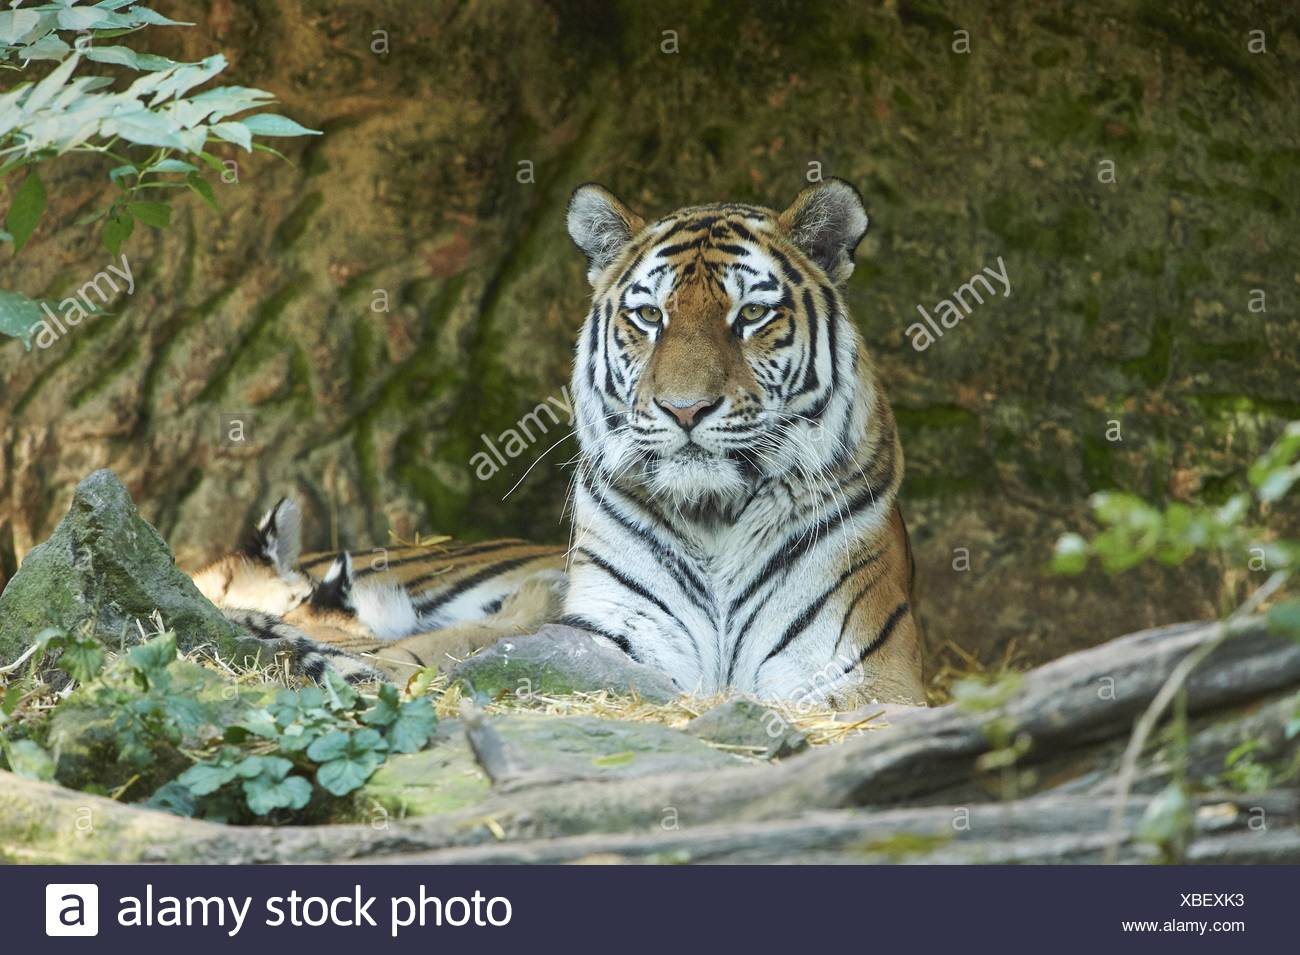 Amur tiger - Stock Image